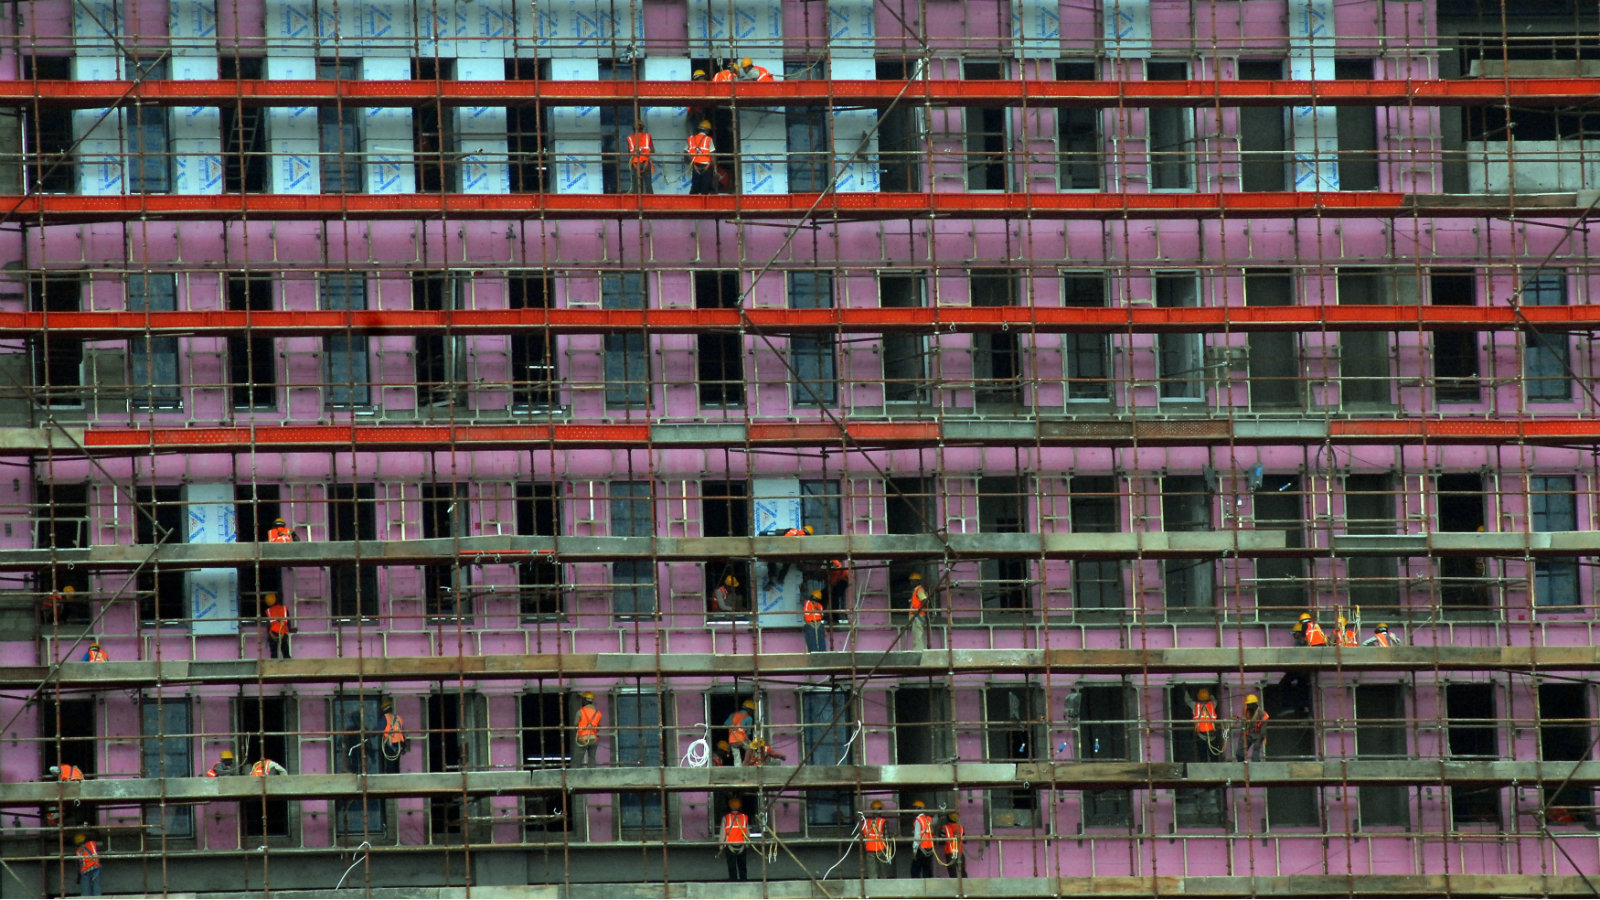 Labourers work at the construction site of a commercial estate in the southern Indian city of Chennai February 1, 2011. Infrastructure data is considered an advance indicator of growth in industrial output, which has been volatile in recent months, although the dominant concern for India's central bank is tackling headline inflation, caused partly by the knock-on effects of high food prices.